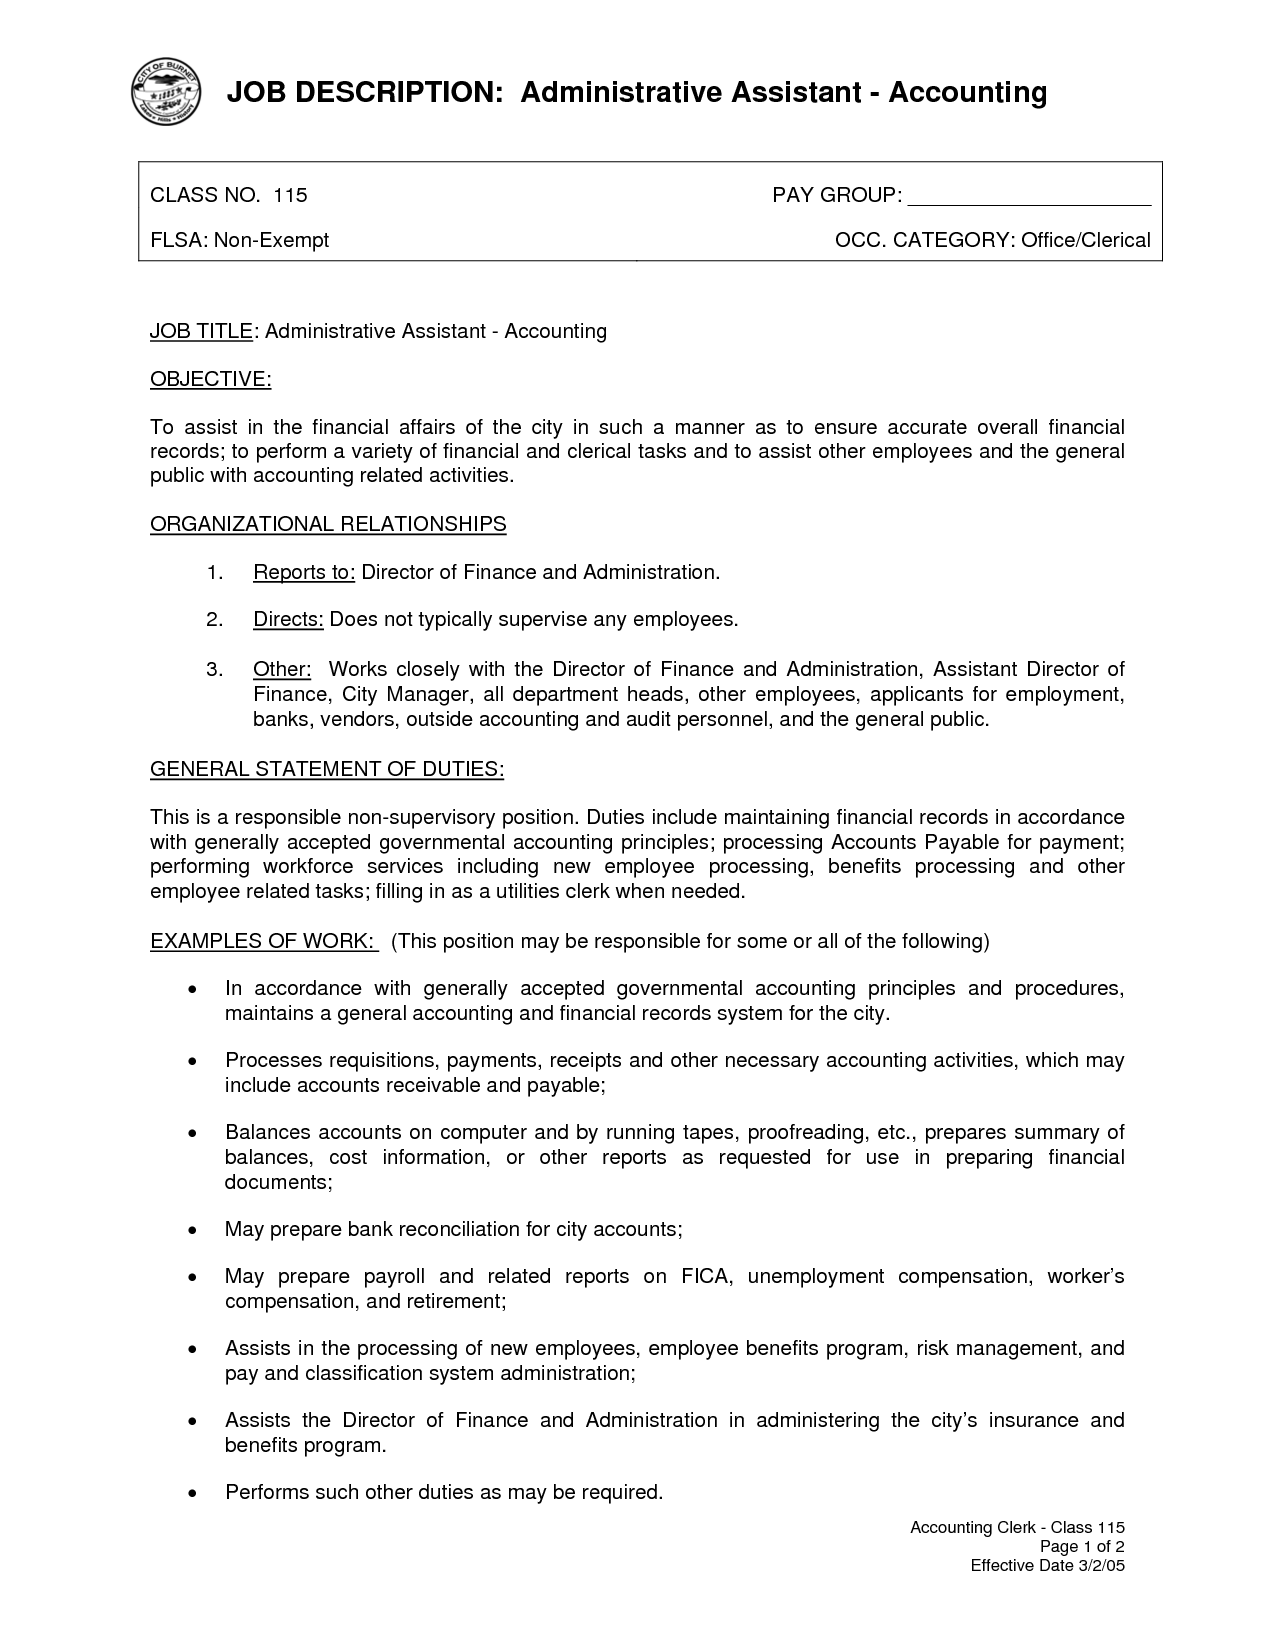 Beautiful Administrative Assistant Resume Duties Resume Office Assistant Job  Description And Responsibilities List  Administrative Assistant Job Duties For Resume